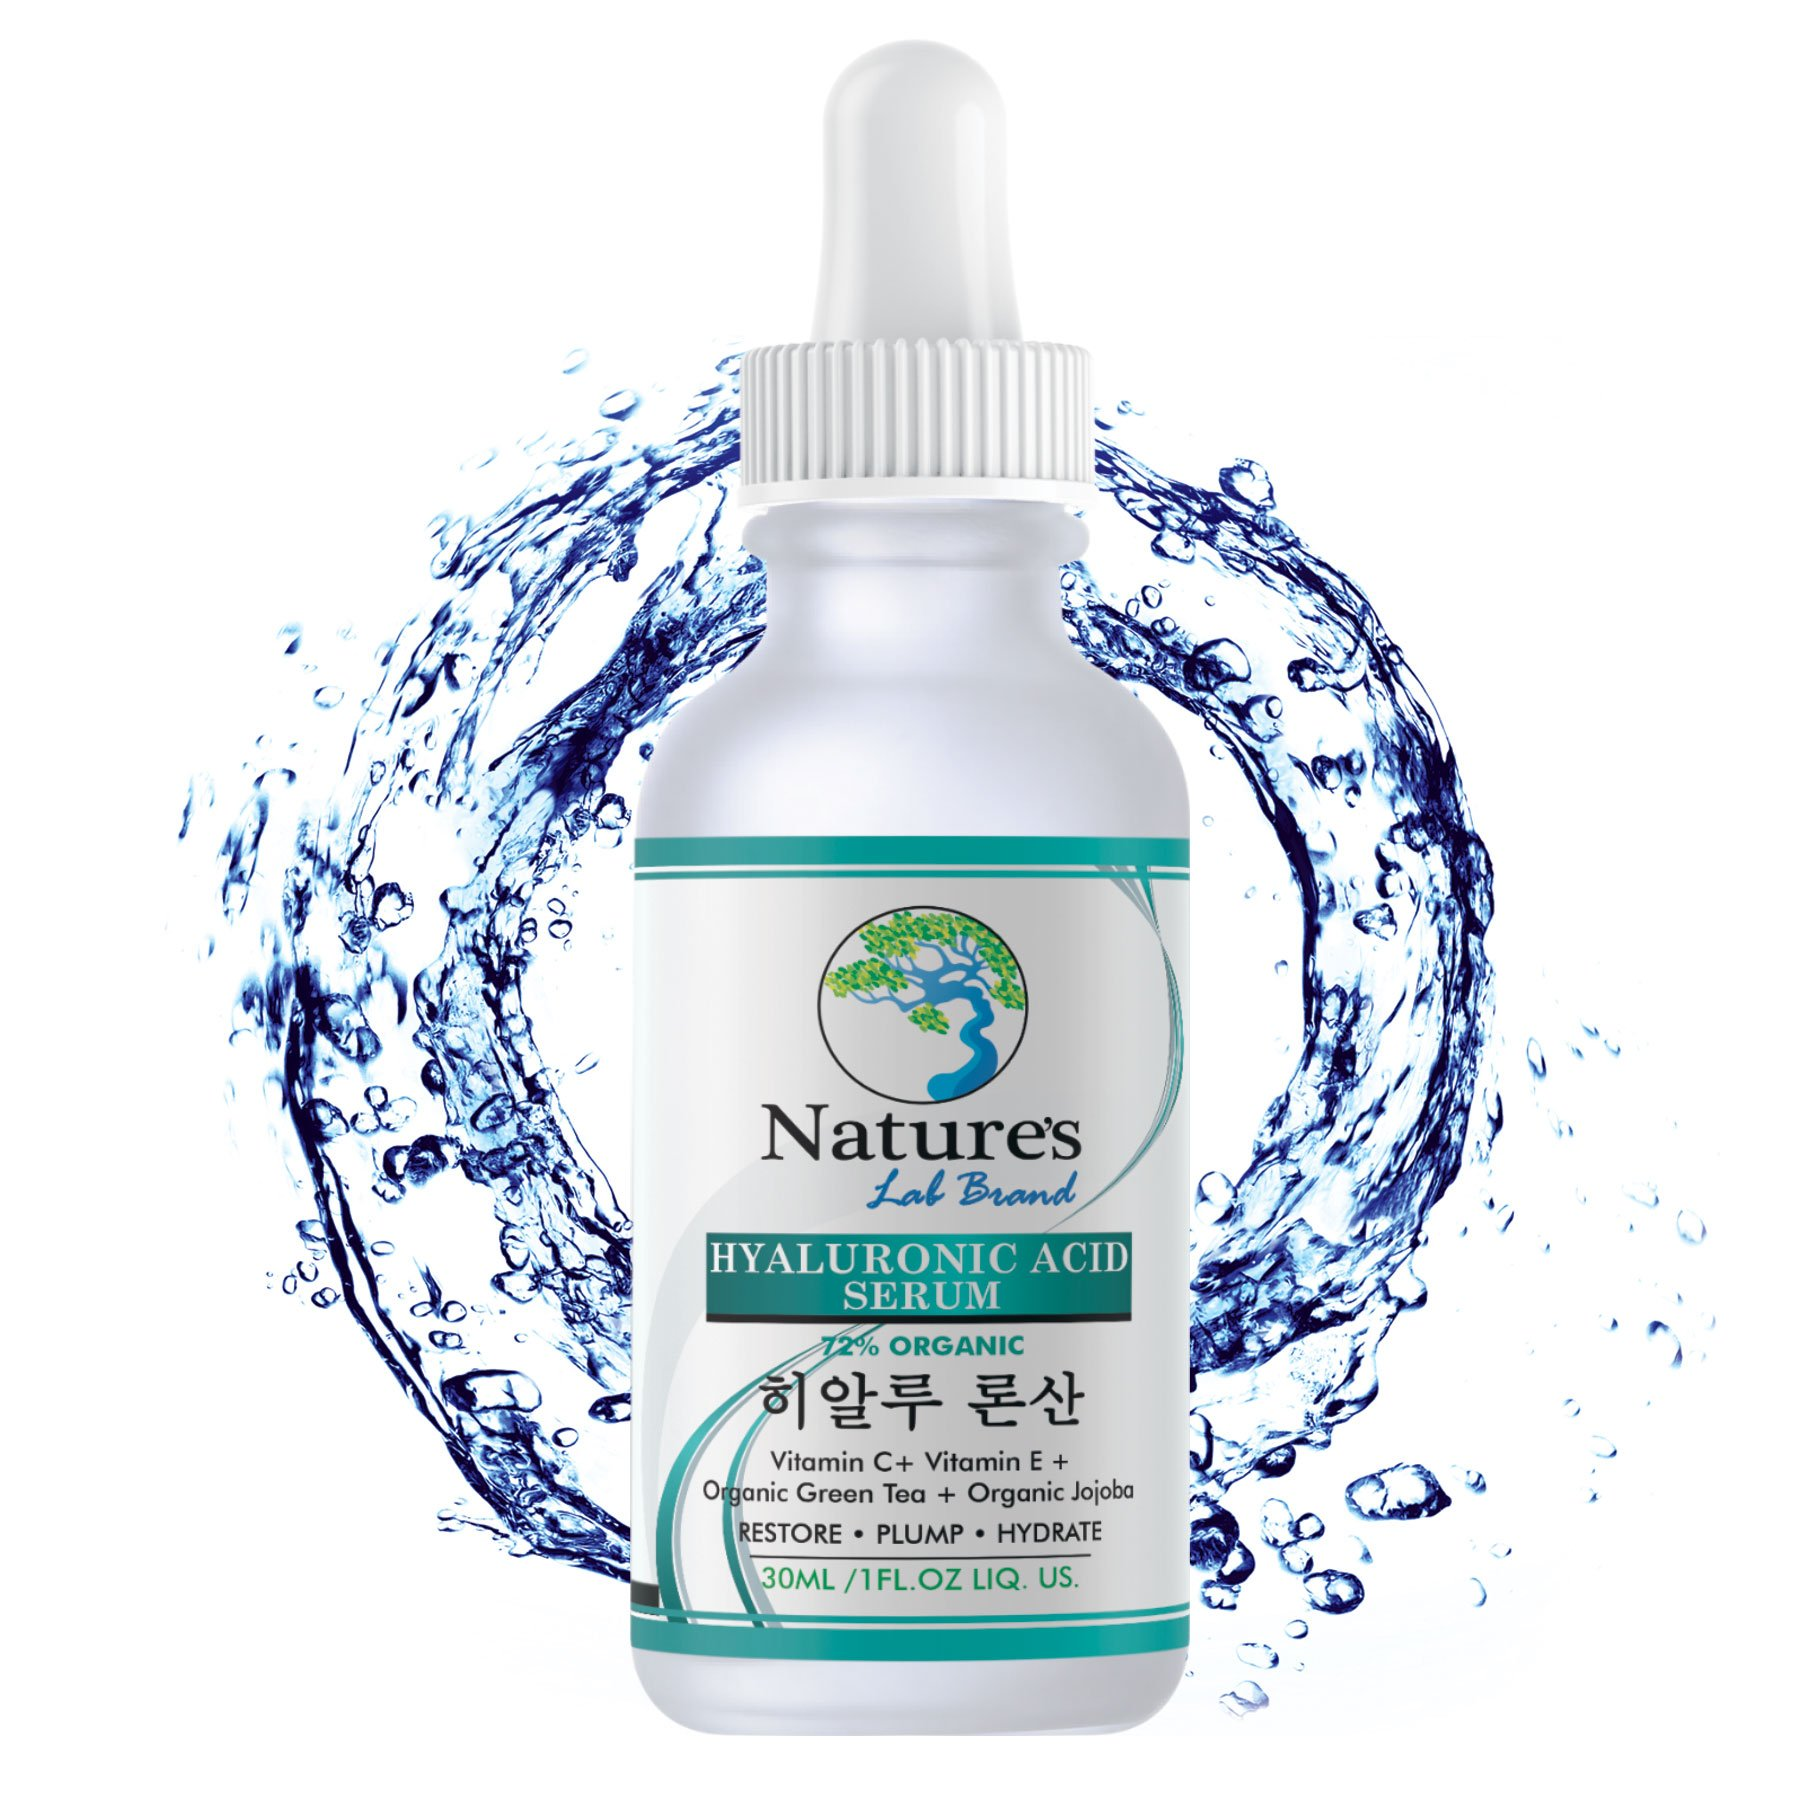 Organic Korean Beauty Hyaluronic Acid Serum for Face + Vitamin C Vitamin E - BEST Advanced Anti Aging formula Anti Wrinkle for whitening hydration all Natural Vegan Korean Skincare Natures Lab Brand by Natures Lab Brand